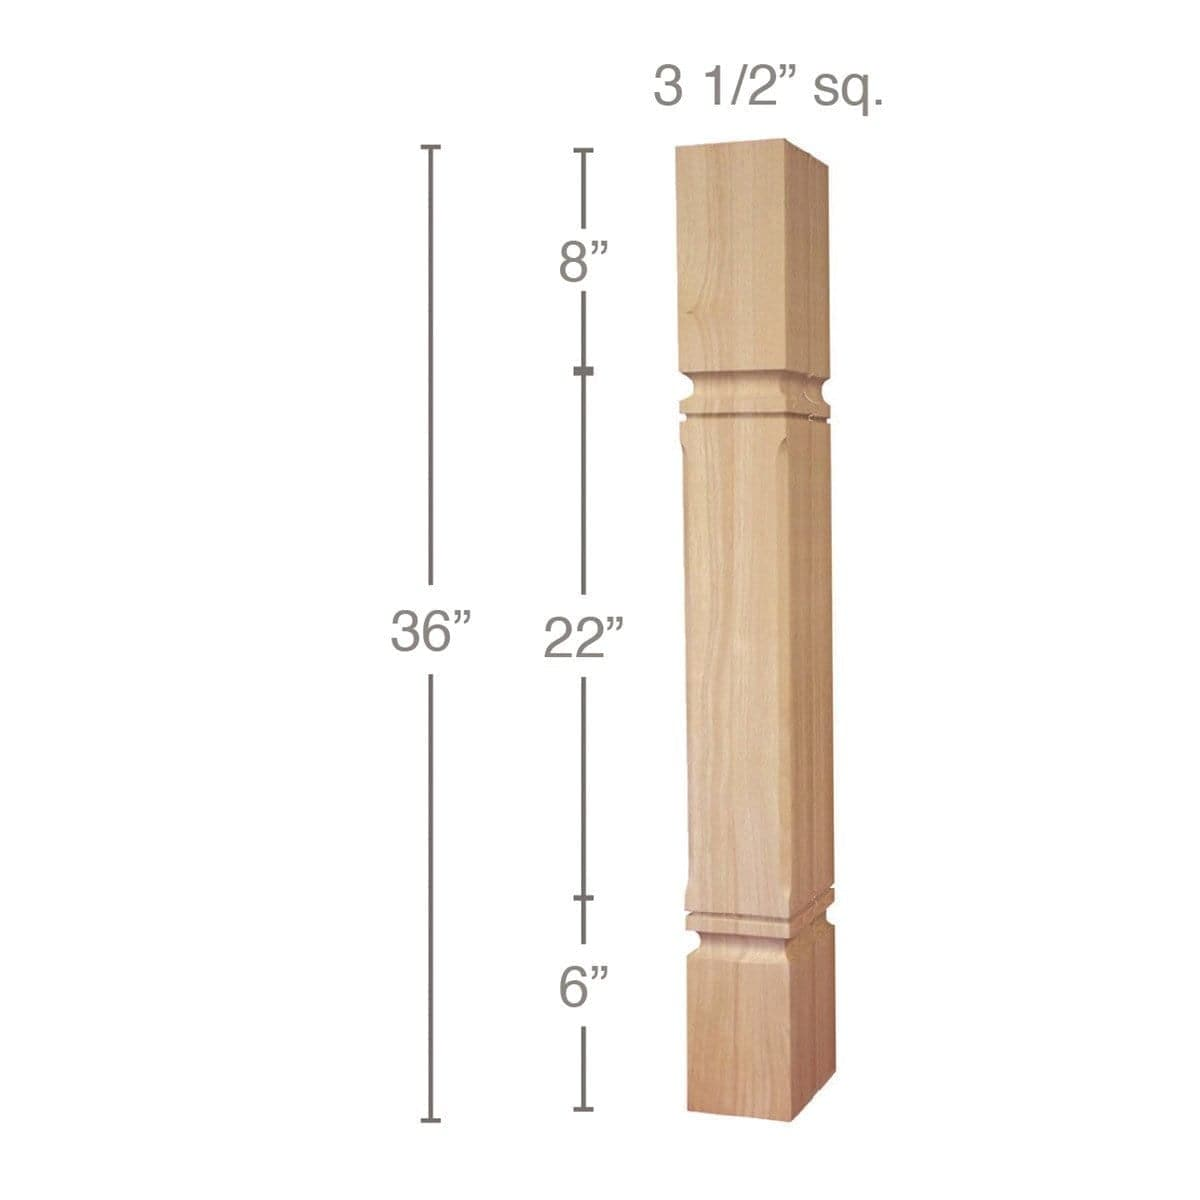 "Mission Chamfered Corner Island Column, 3 1/2""sq. x 36""h"